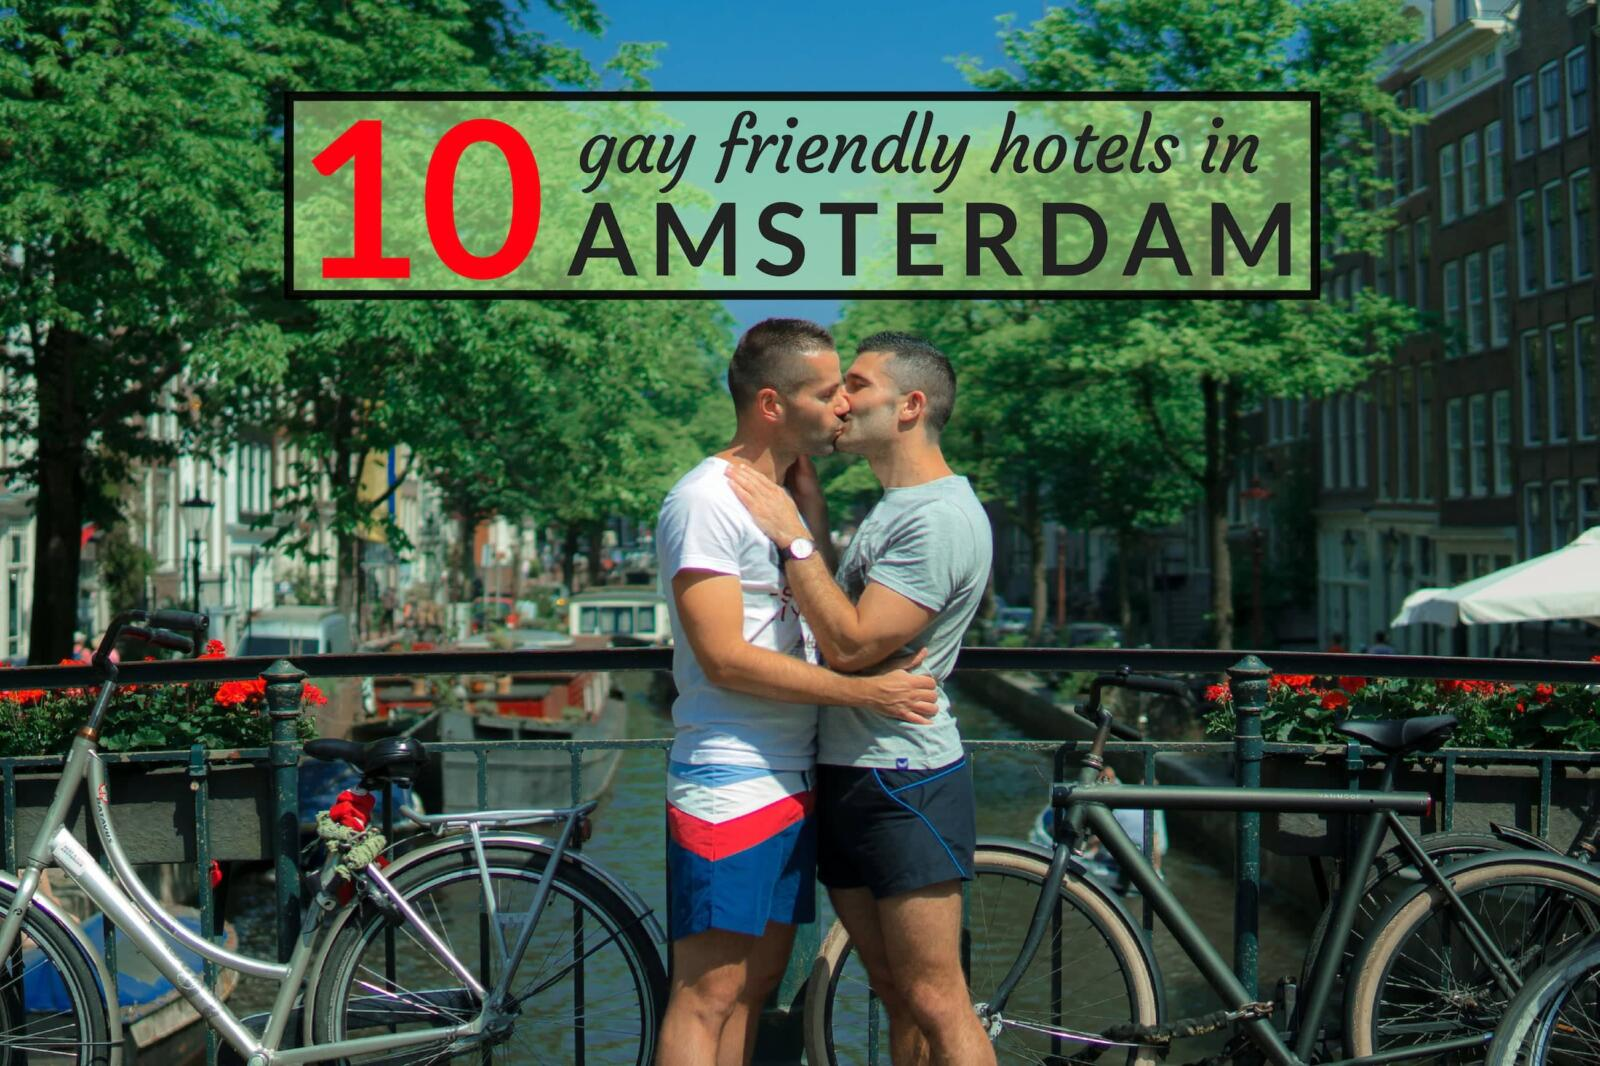 All gay hotels